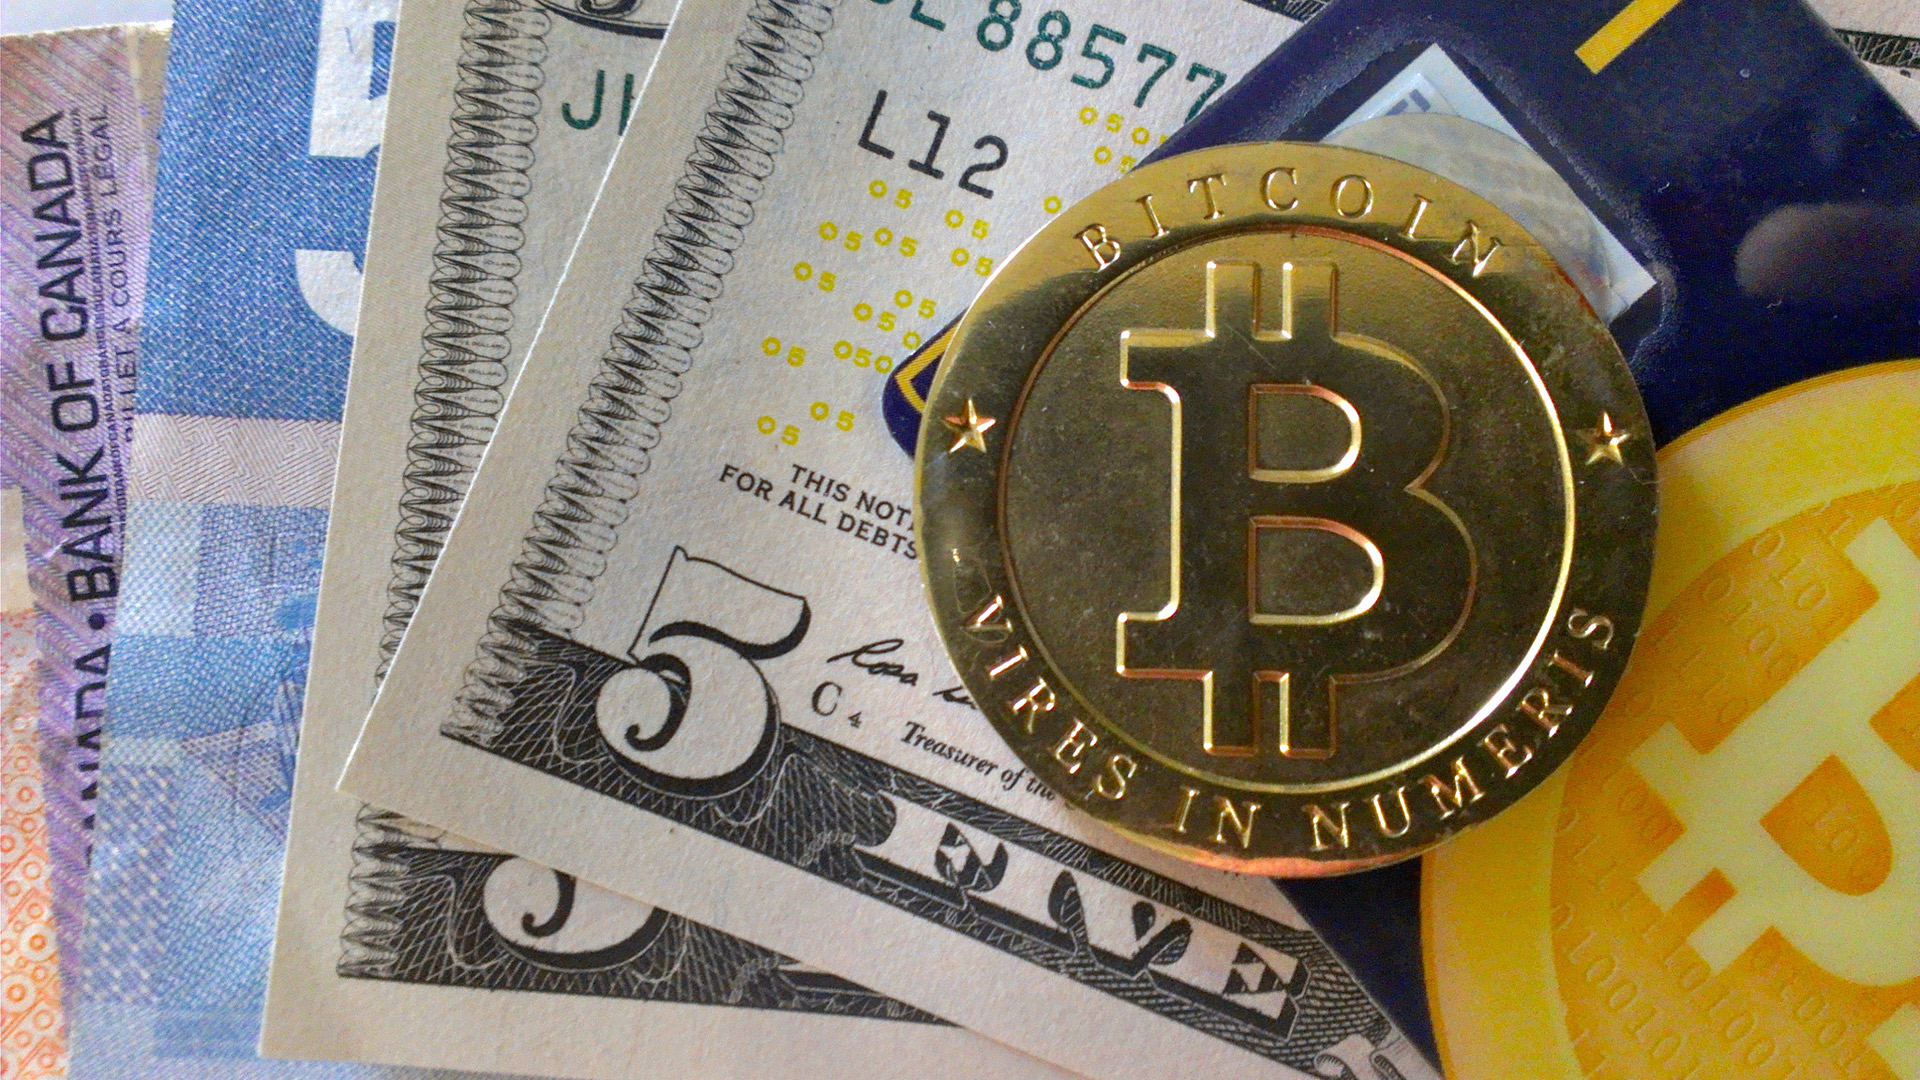 Bitcoin and digital currency future